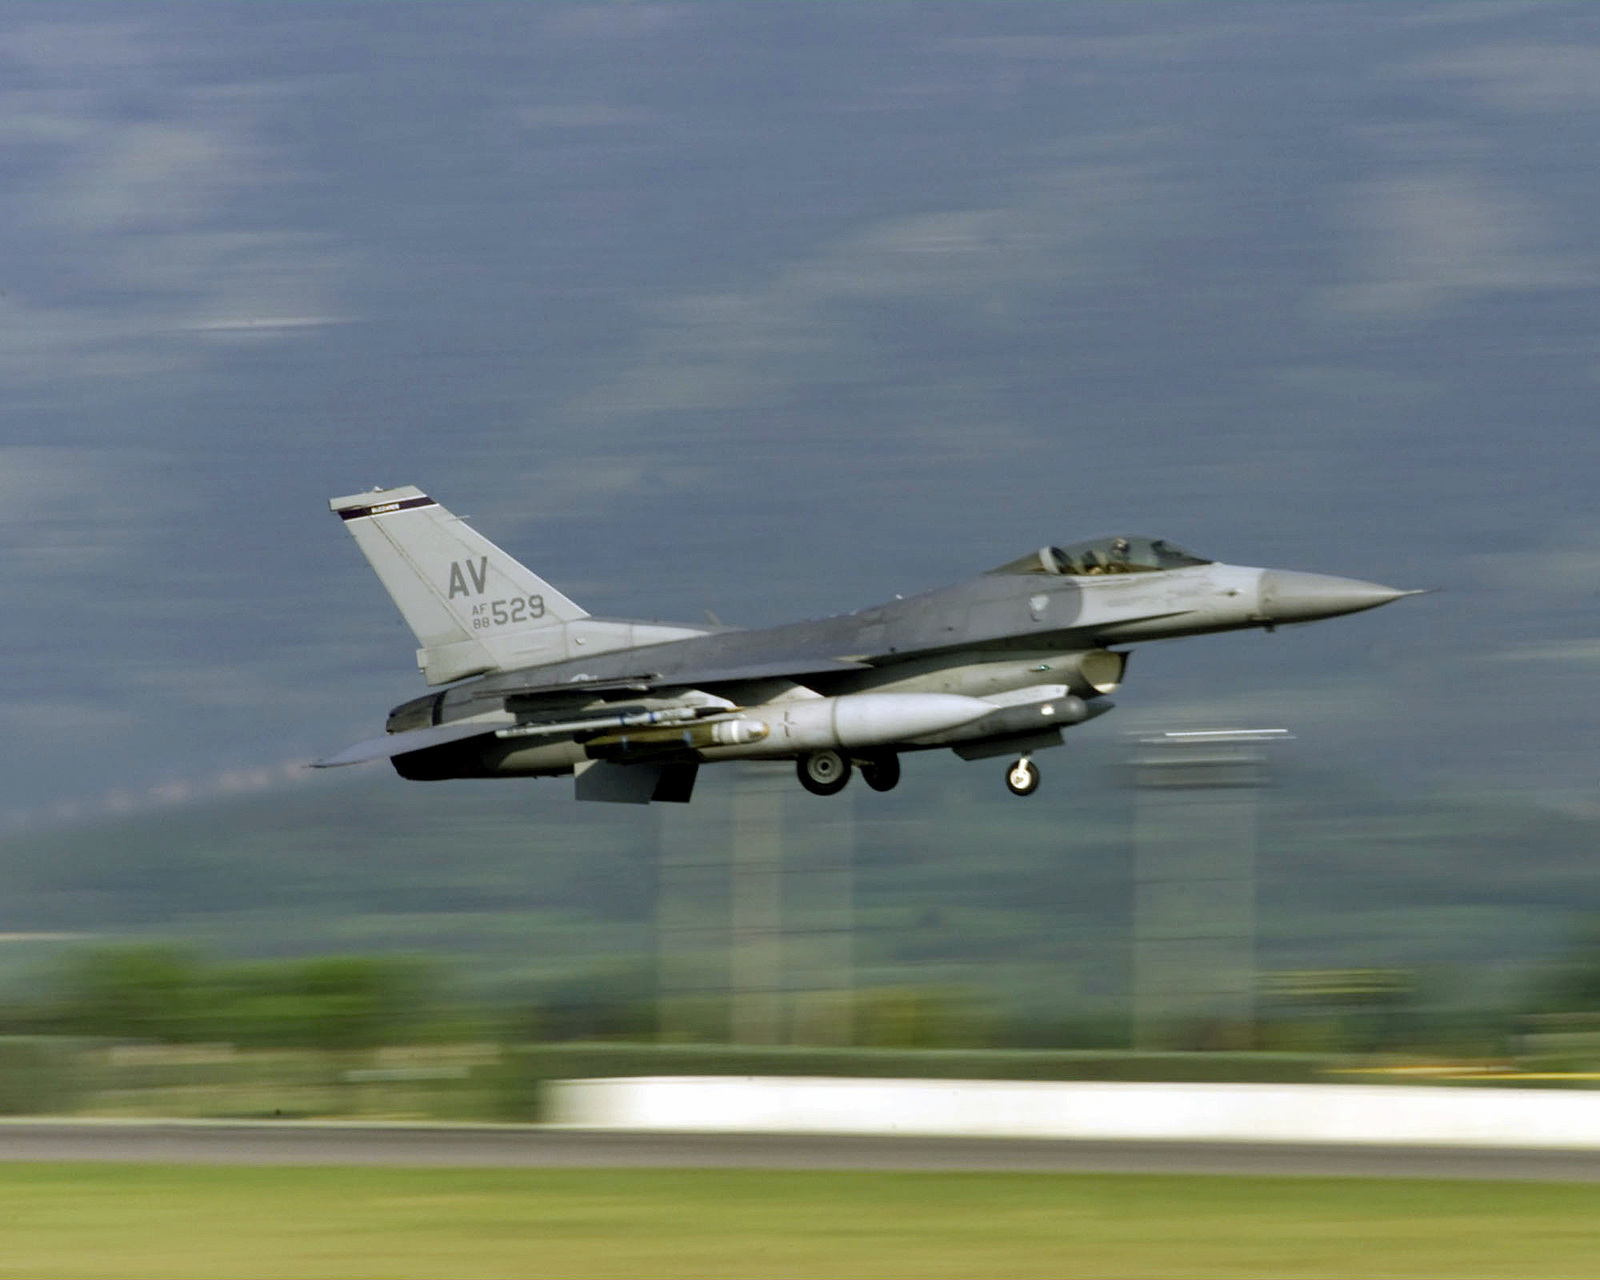 Right side profile medium shot as a US Air Force F-16 Falcon from the 510th Fighter Squadron, 31st Fighter Wing, Aviano Air Base, Italy, launches in Support of Operation Joint Guardian, over the Bosnian continent